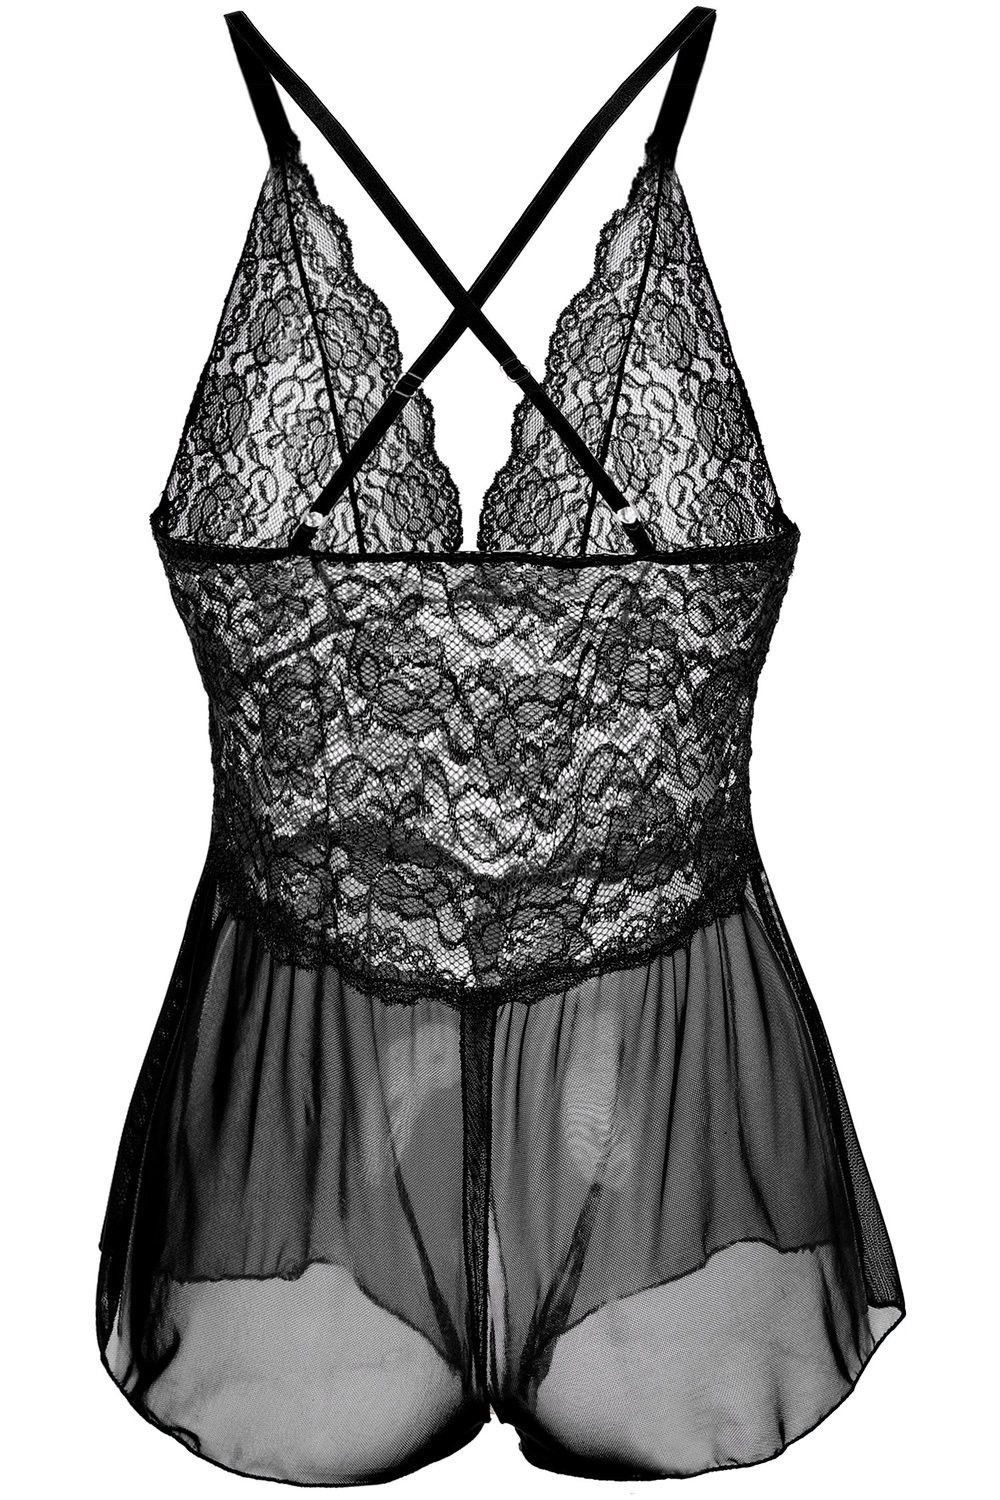 US FAST Women sexy-Lingerie Dress Babydoll Lace Sleepwear Underwear Nightwear